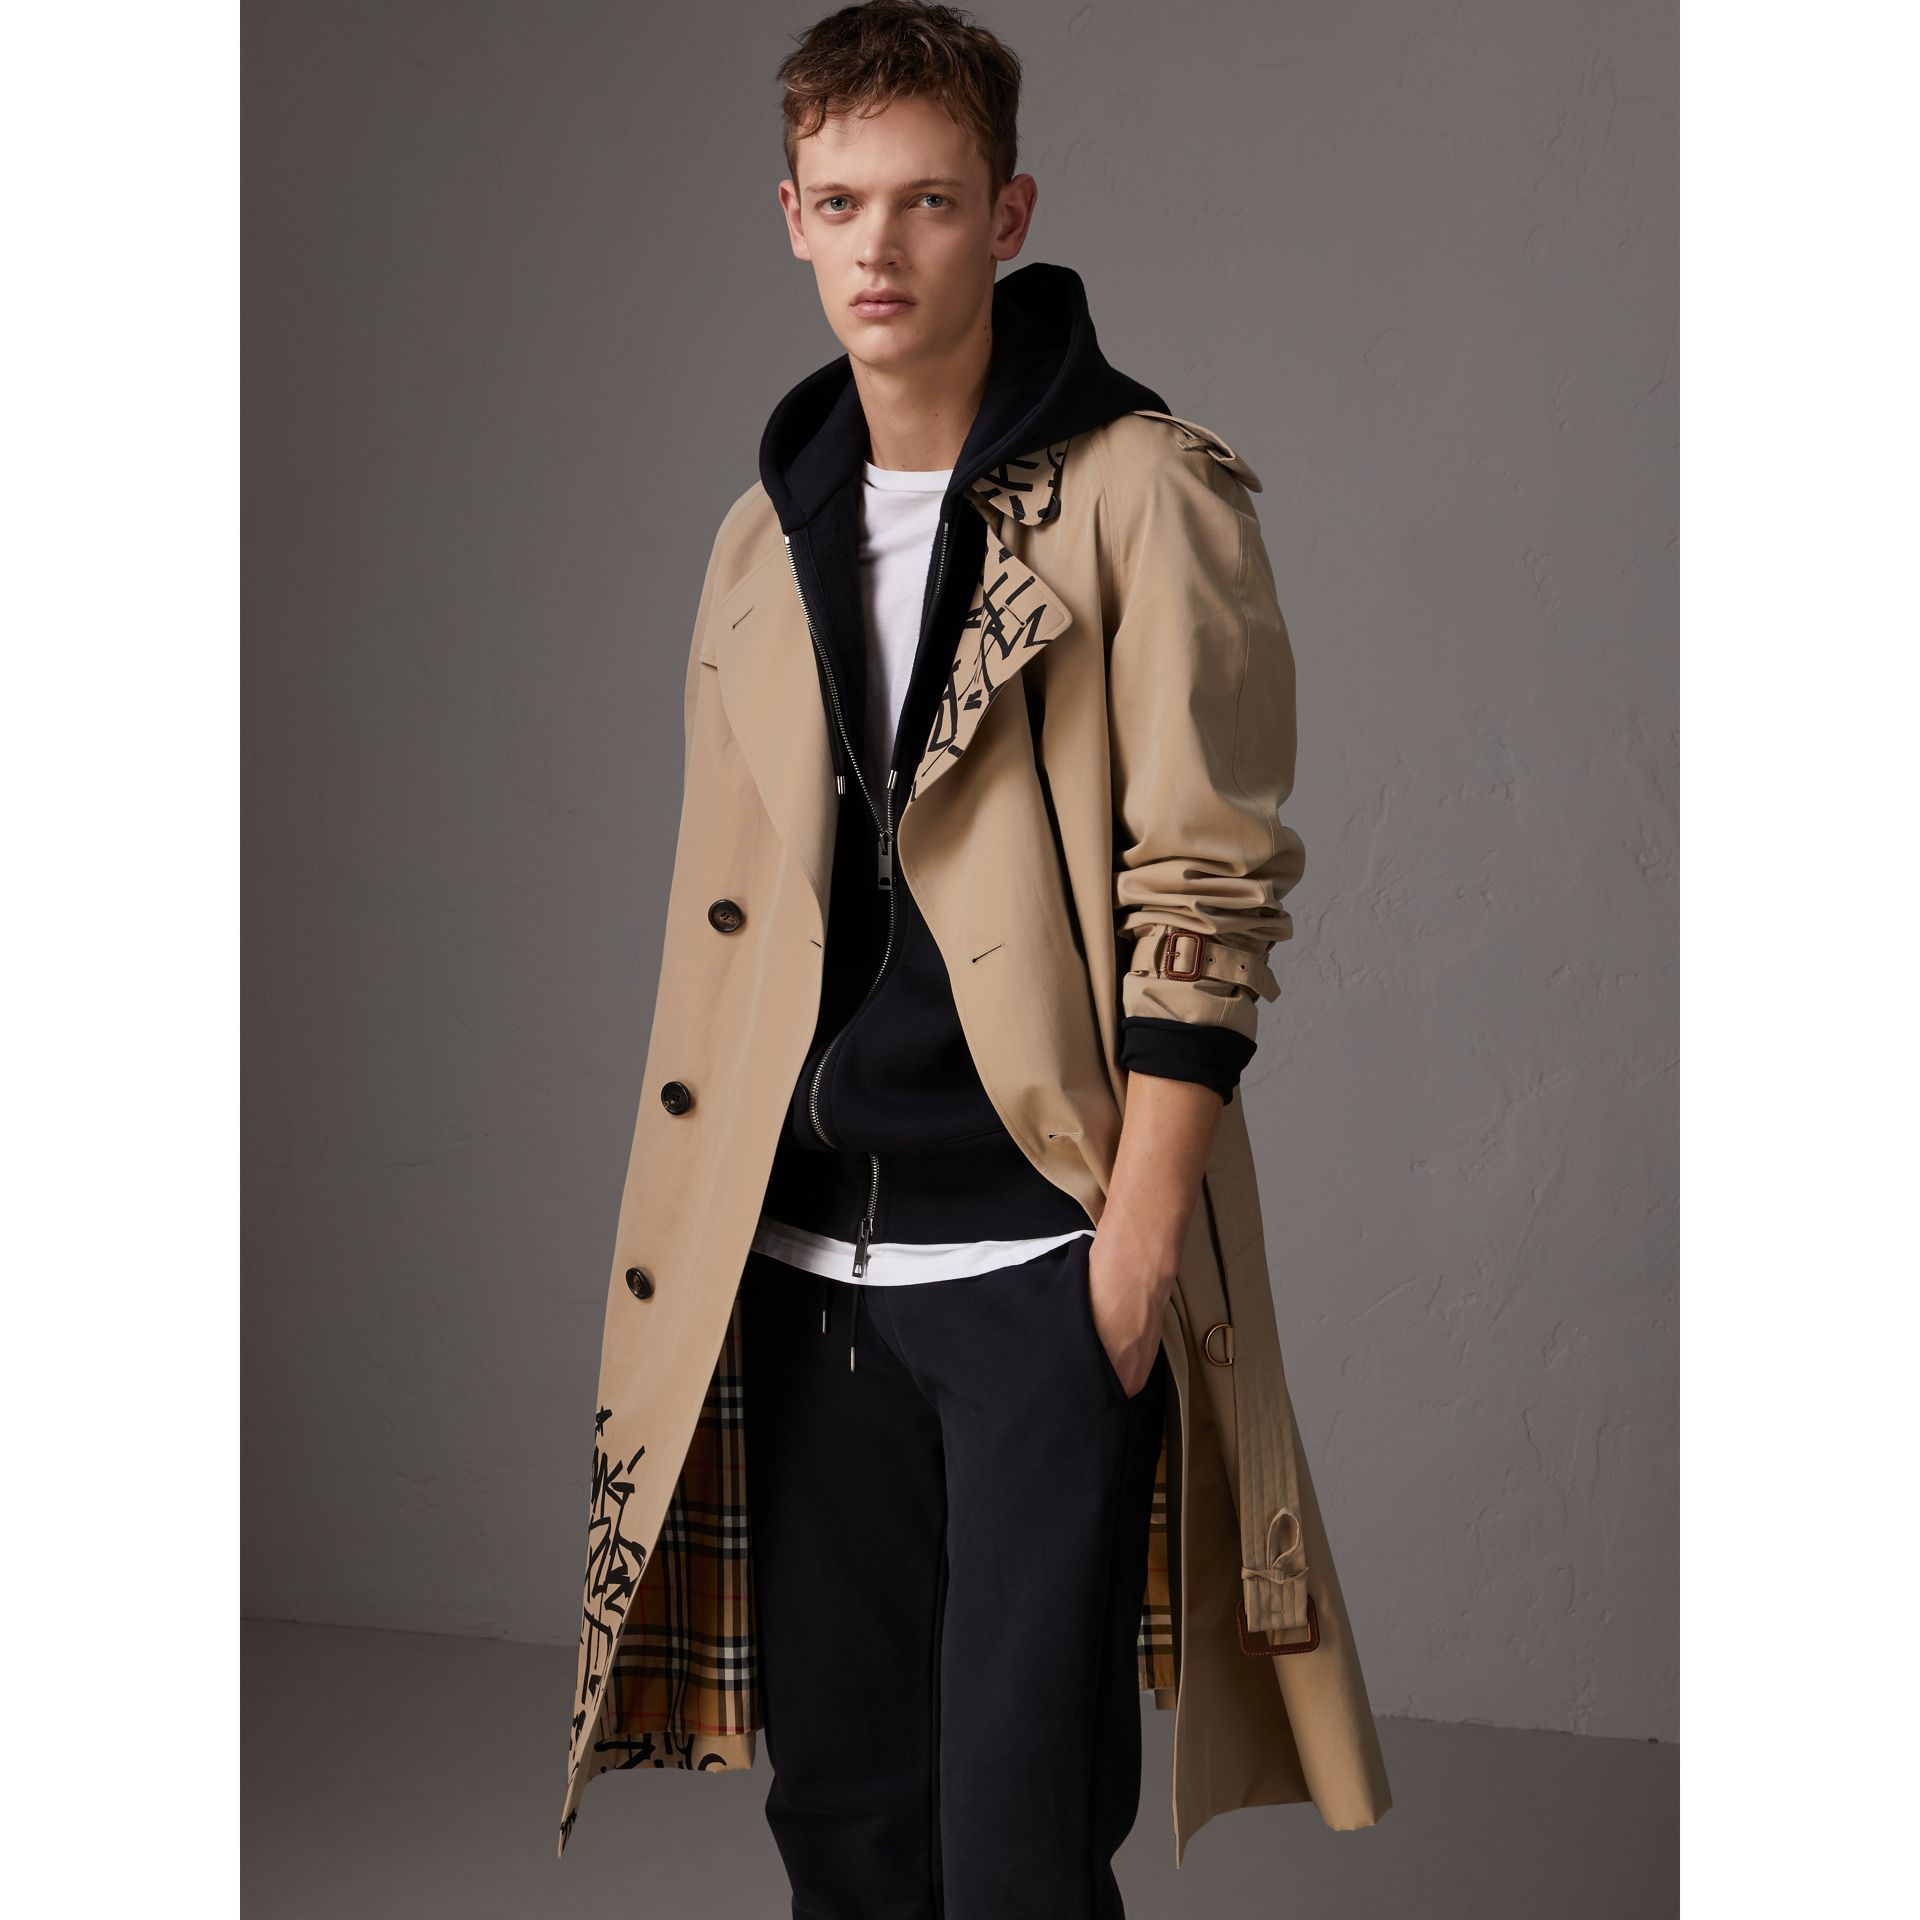 Burberry x Kris Wu Gabardine Trench Coat in Honey - Men | Burberry - gallery image 6